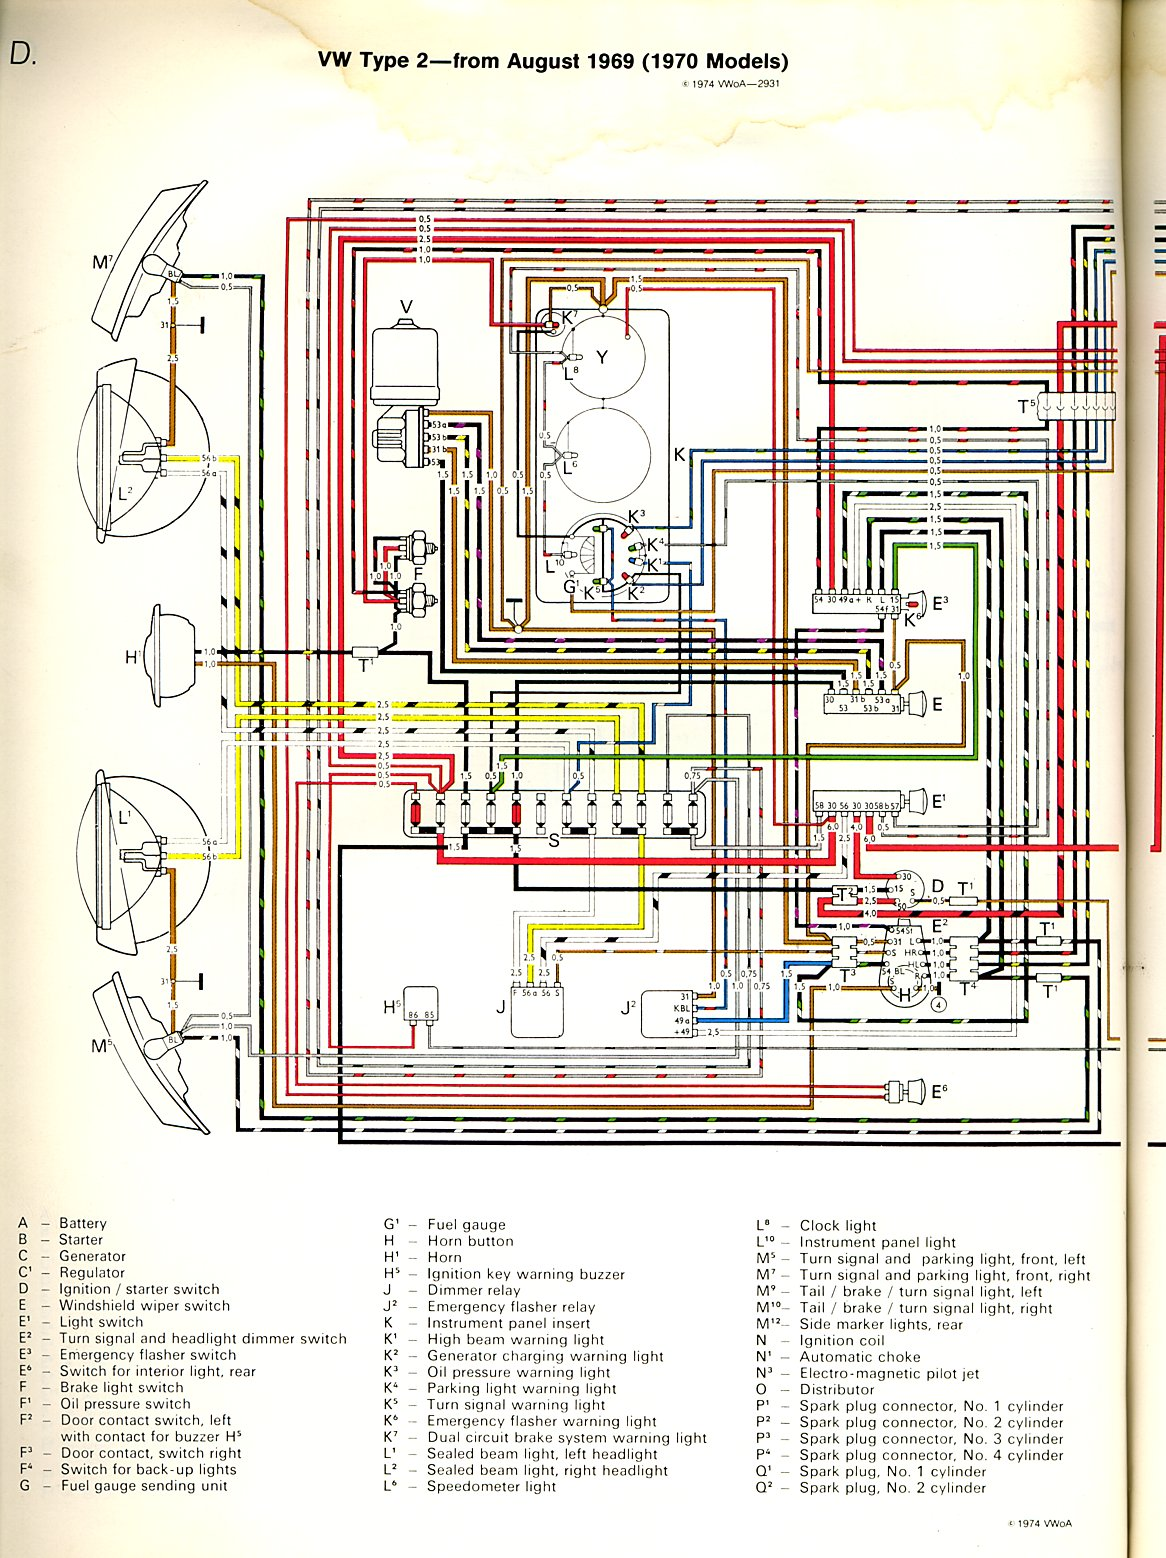 baybus_70a thesamba com type 2 wiring diagrams 1974 Chevy Truck Wiring Diagram at panicattacktreatment.co